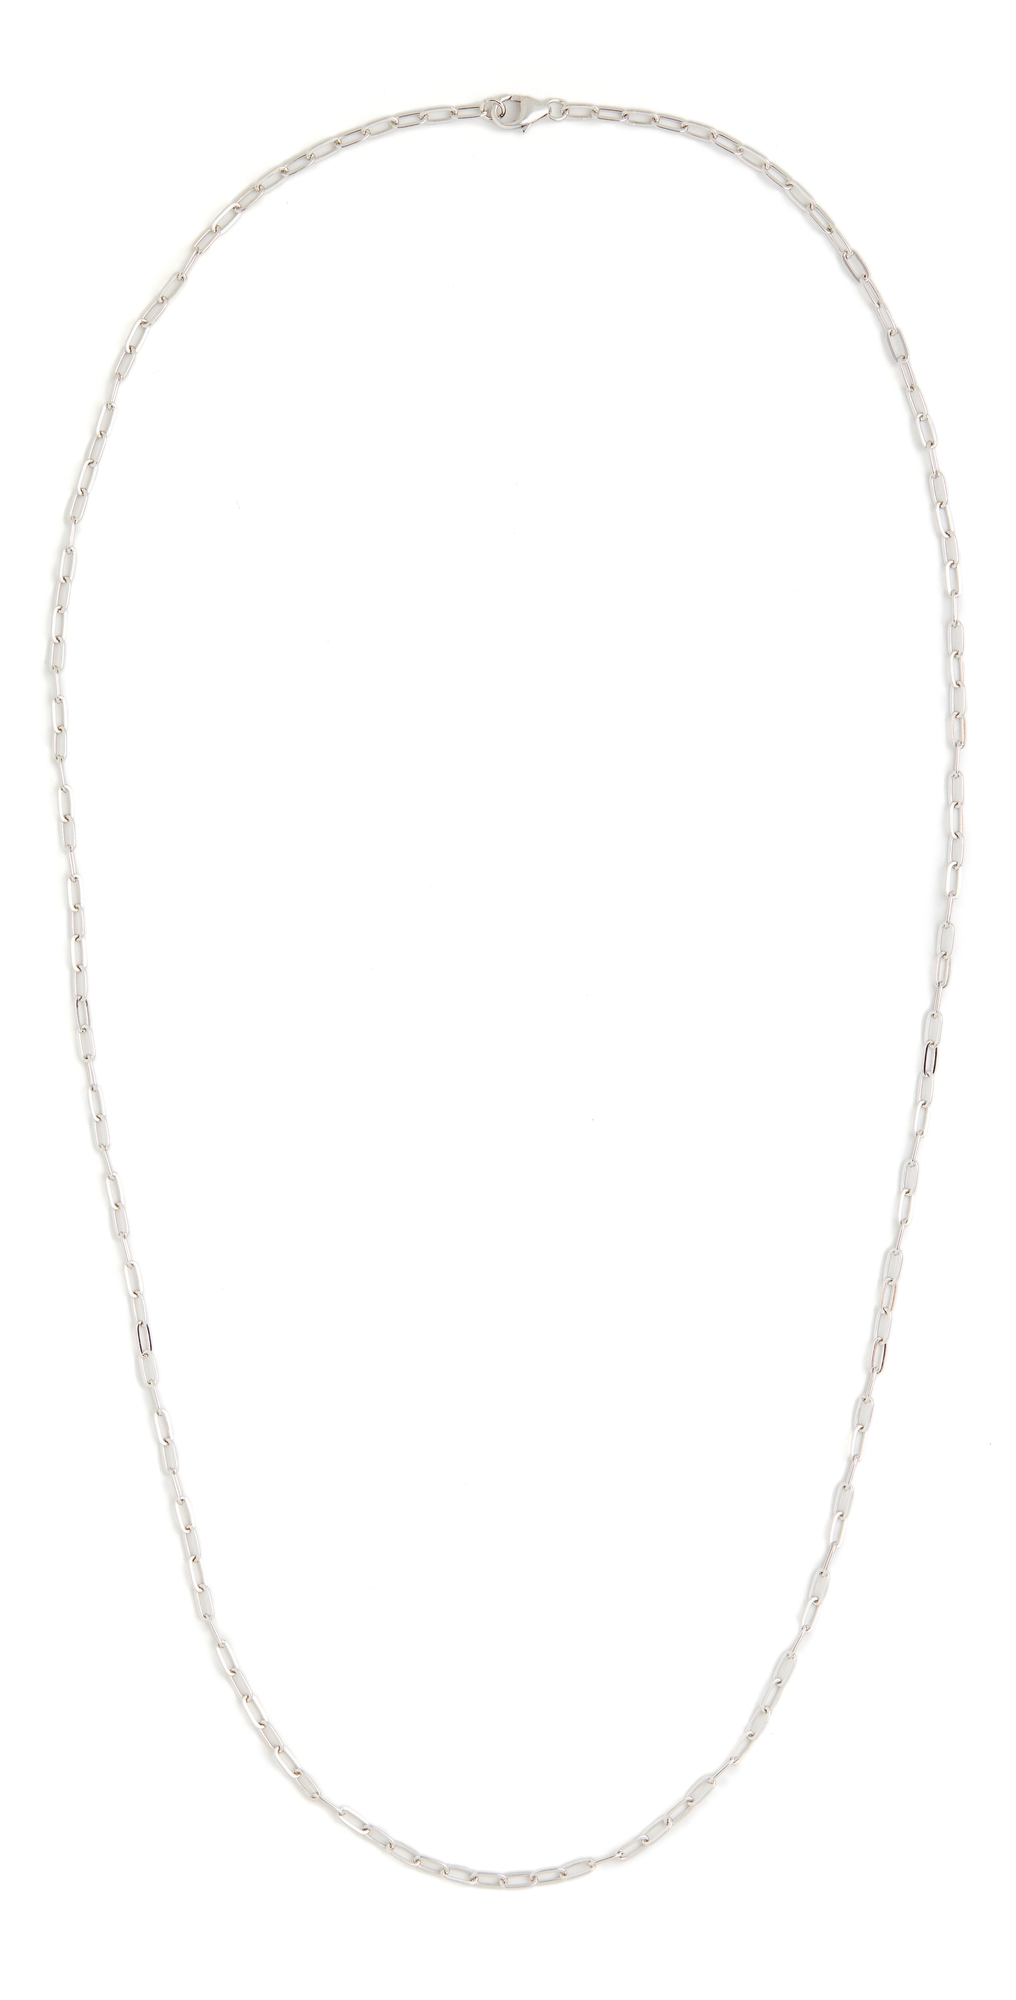 2.5MM Cable Chain Necklace